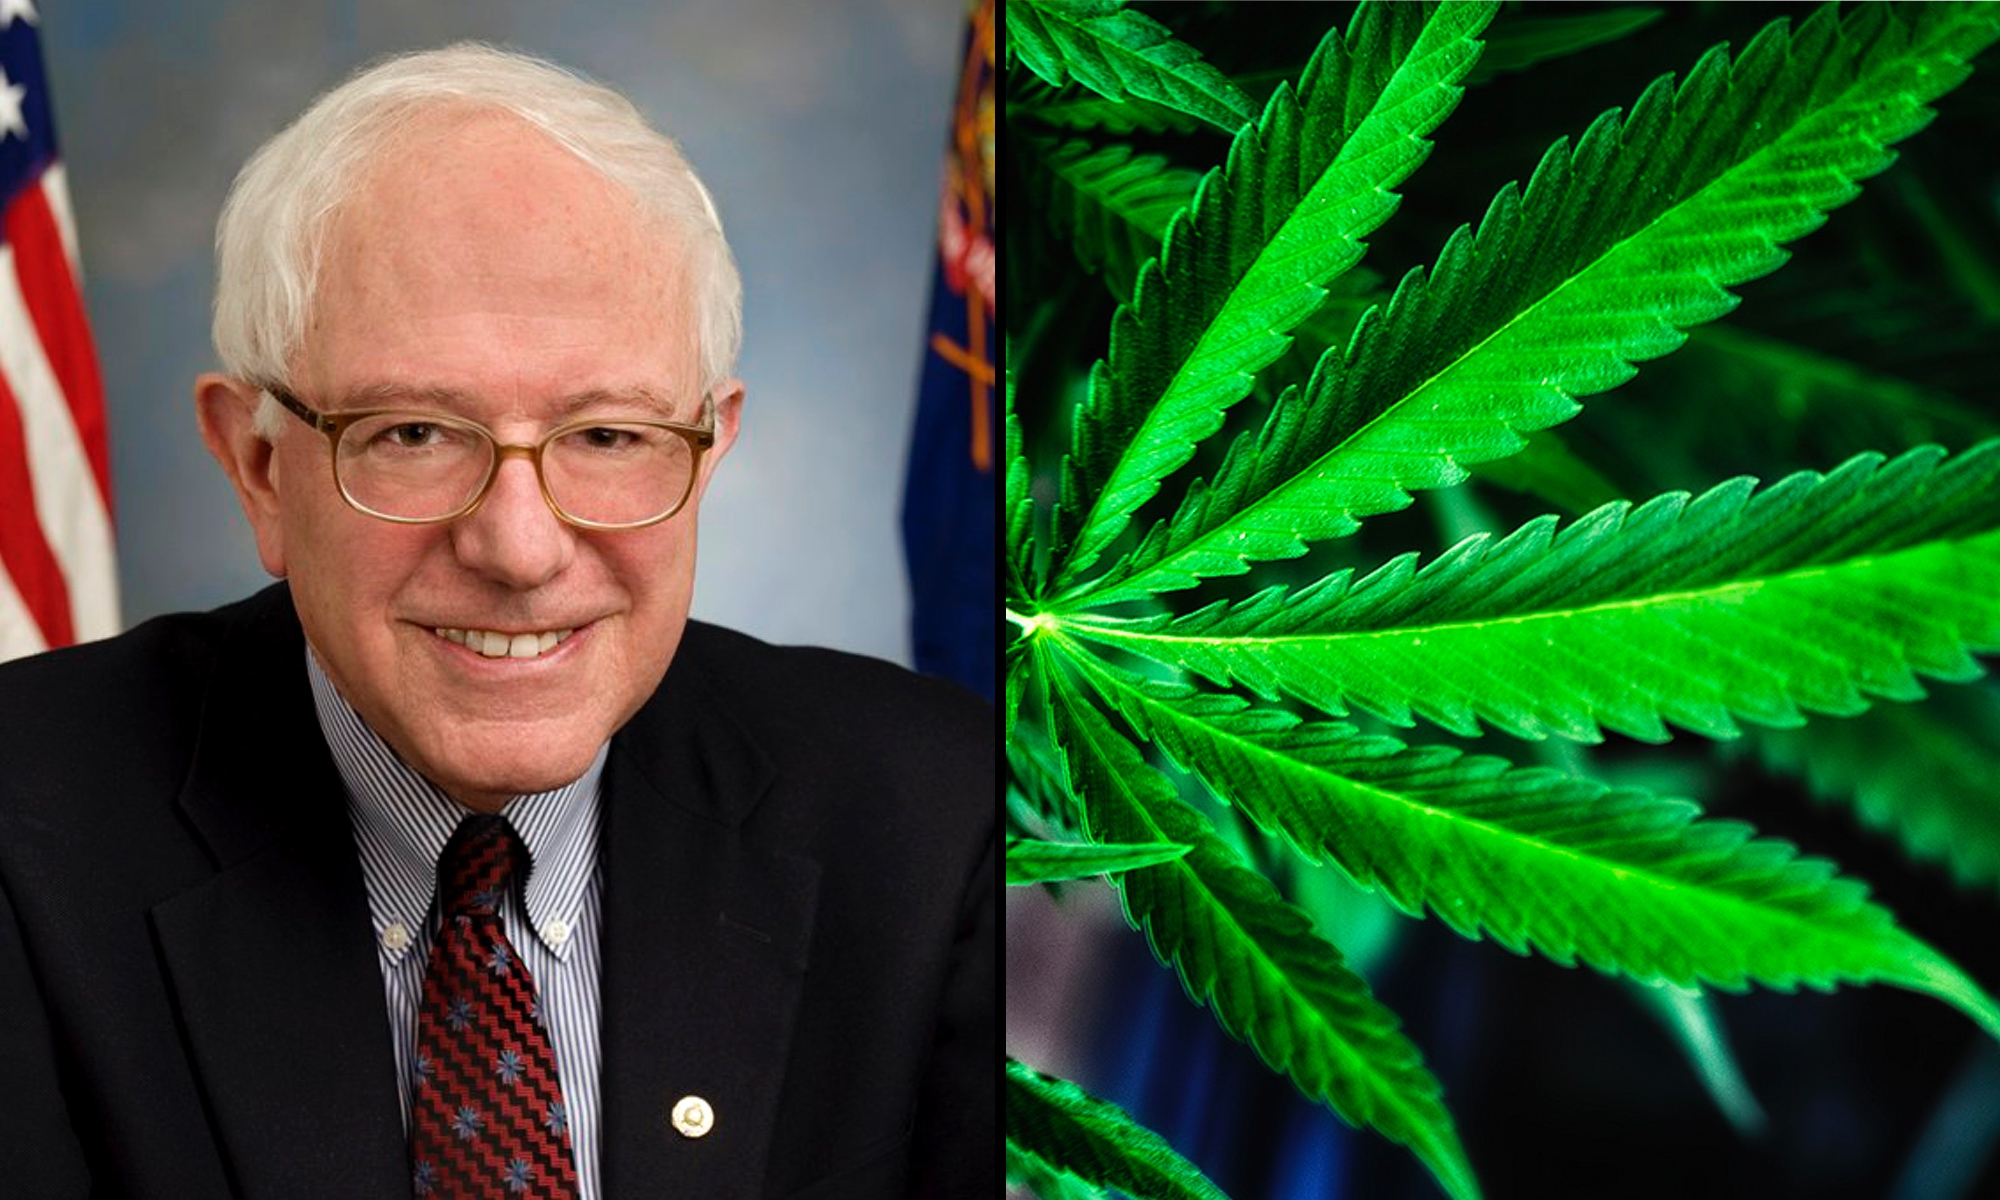 LATEST NEWS ABOUT CANNABIS